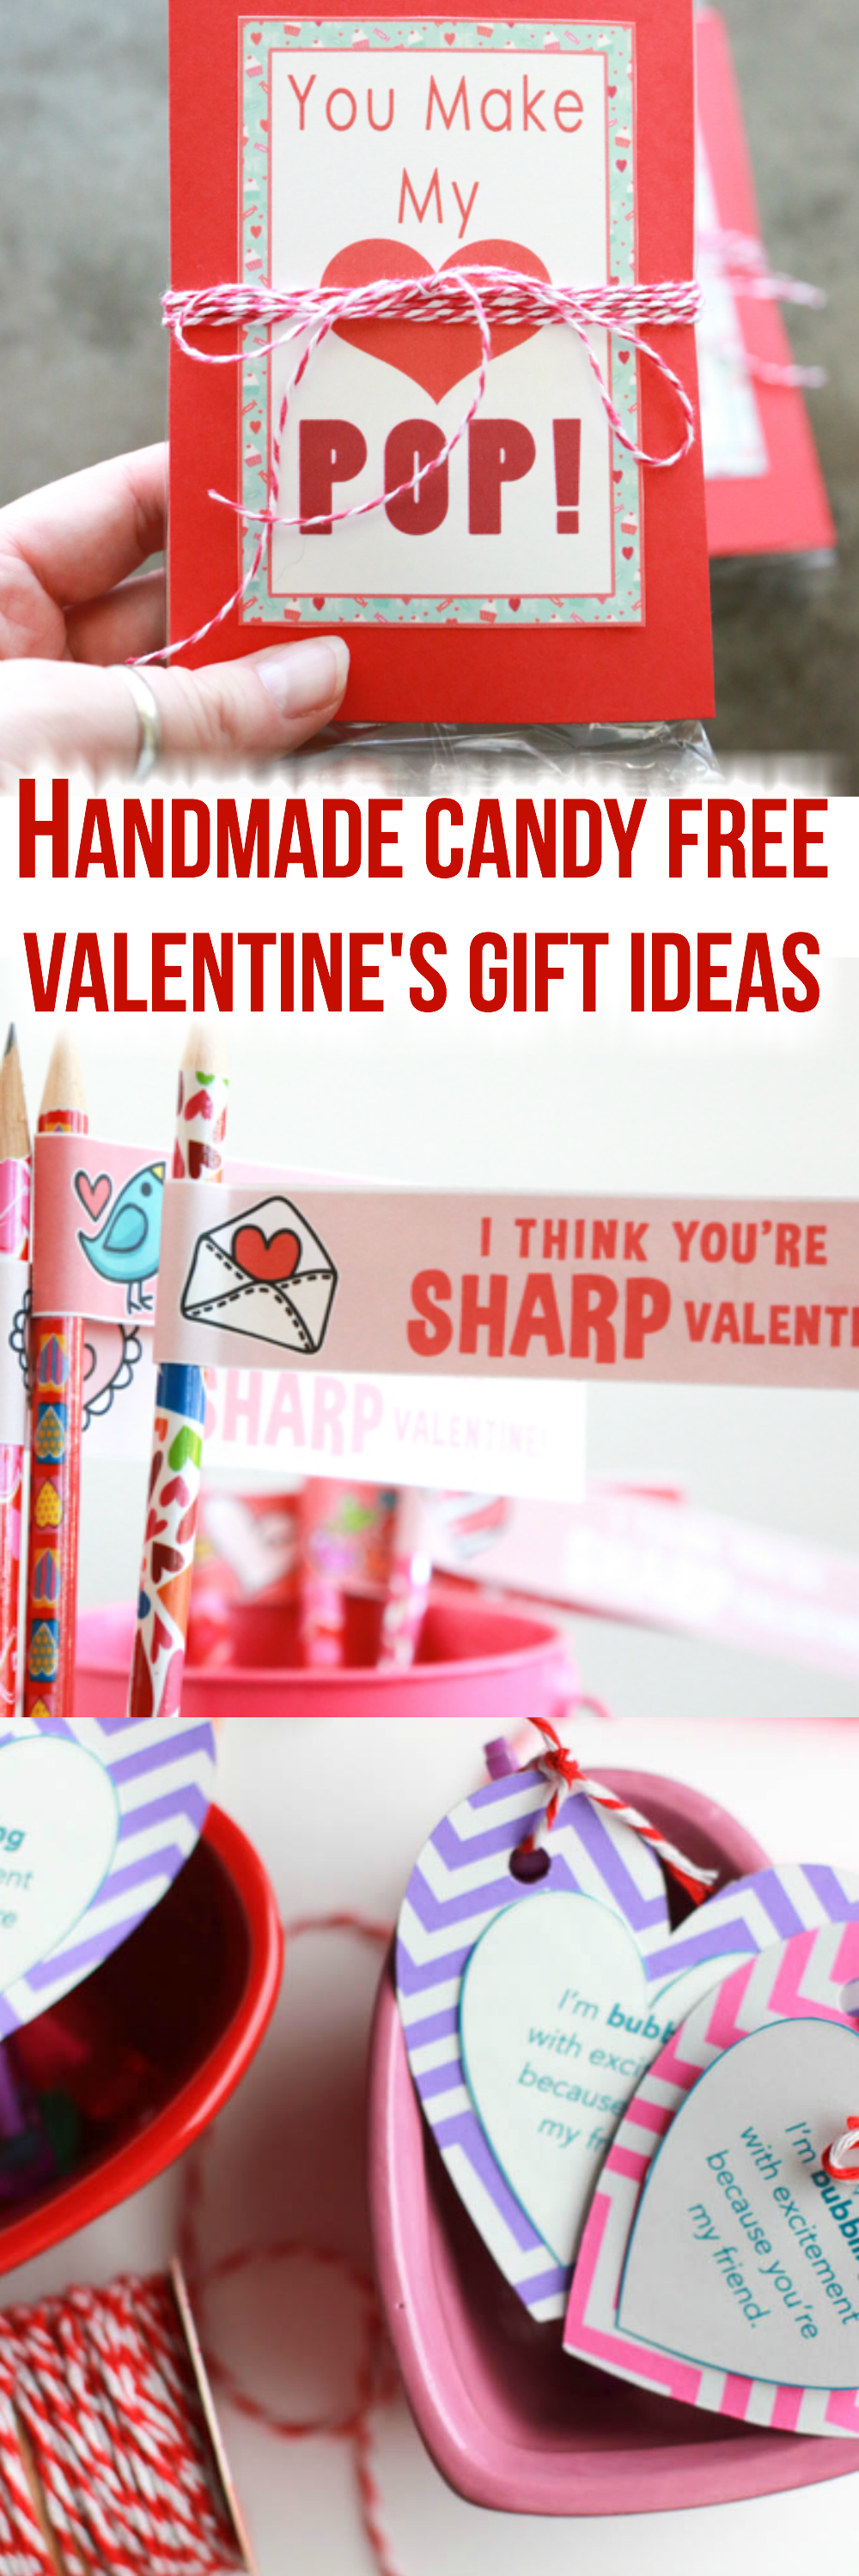 Tired of the sugar overload on Valentine's Day? Try one of these Handmade Candy Free Valentine's Day Gift Ideas instead.